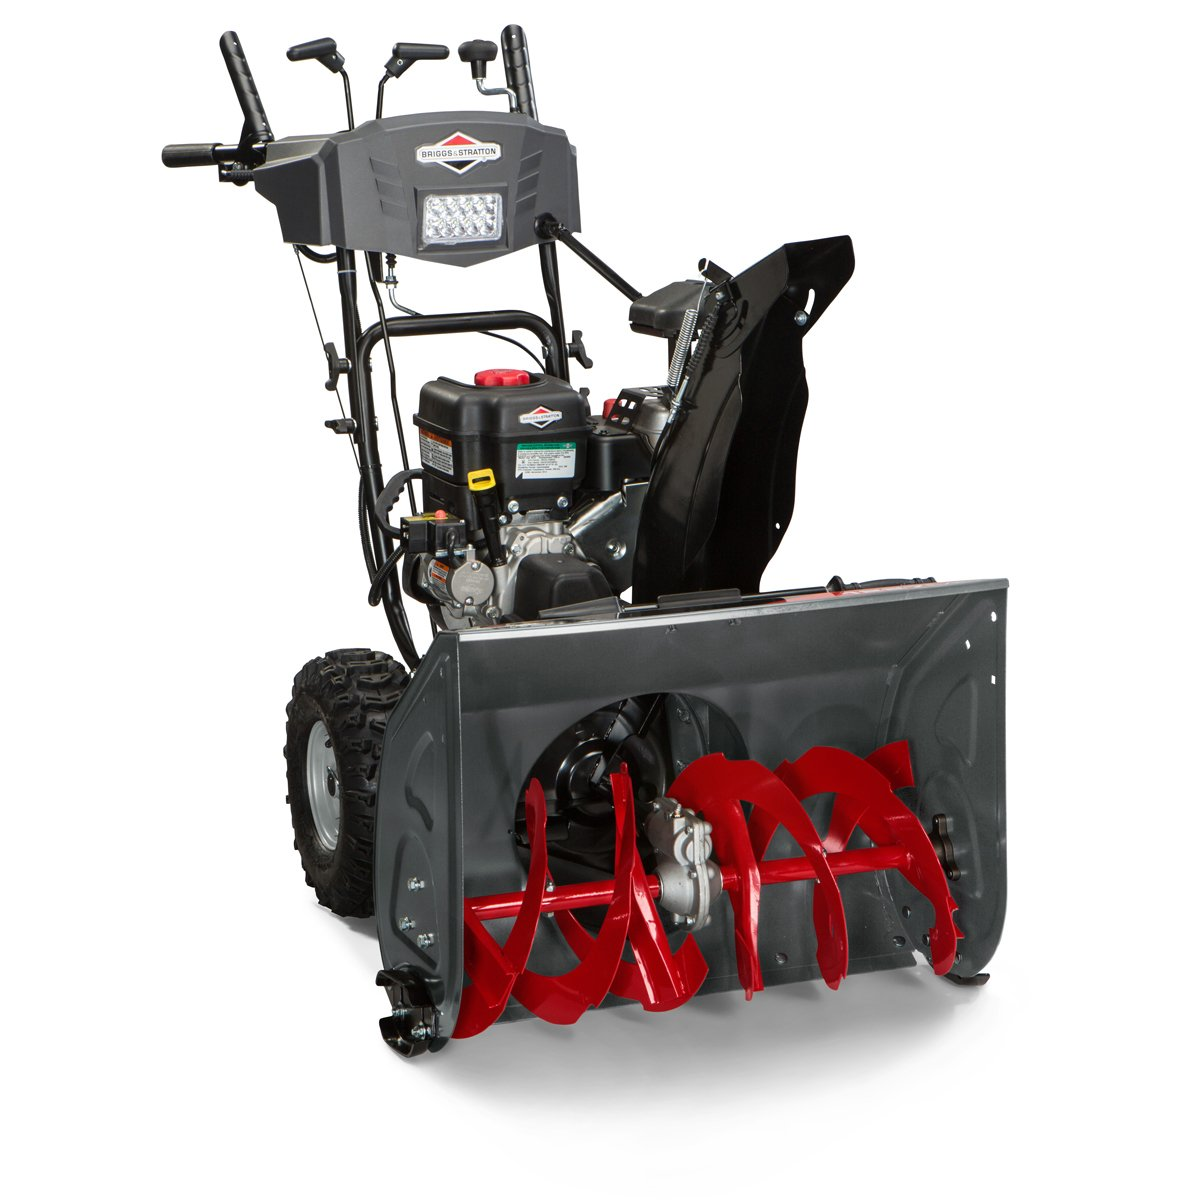 Best Rated Snow Blower Brands : Savings on top rated snow blowers home sweet decor